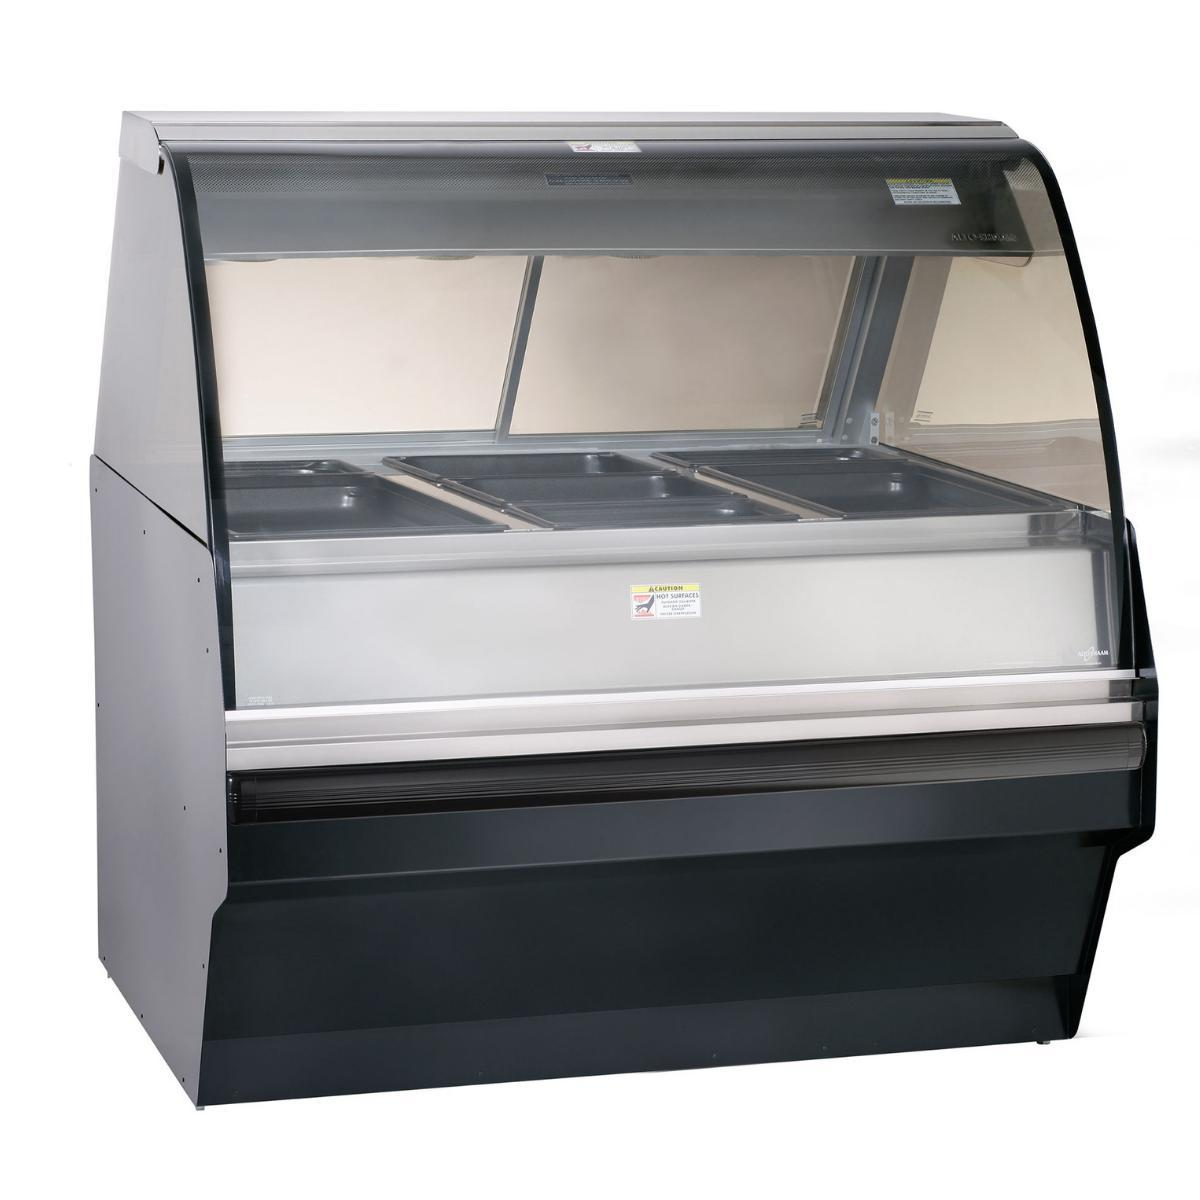 Alto Shaam TY2SYS-48-BK Hot Deli Display System